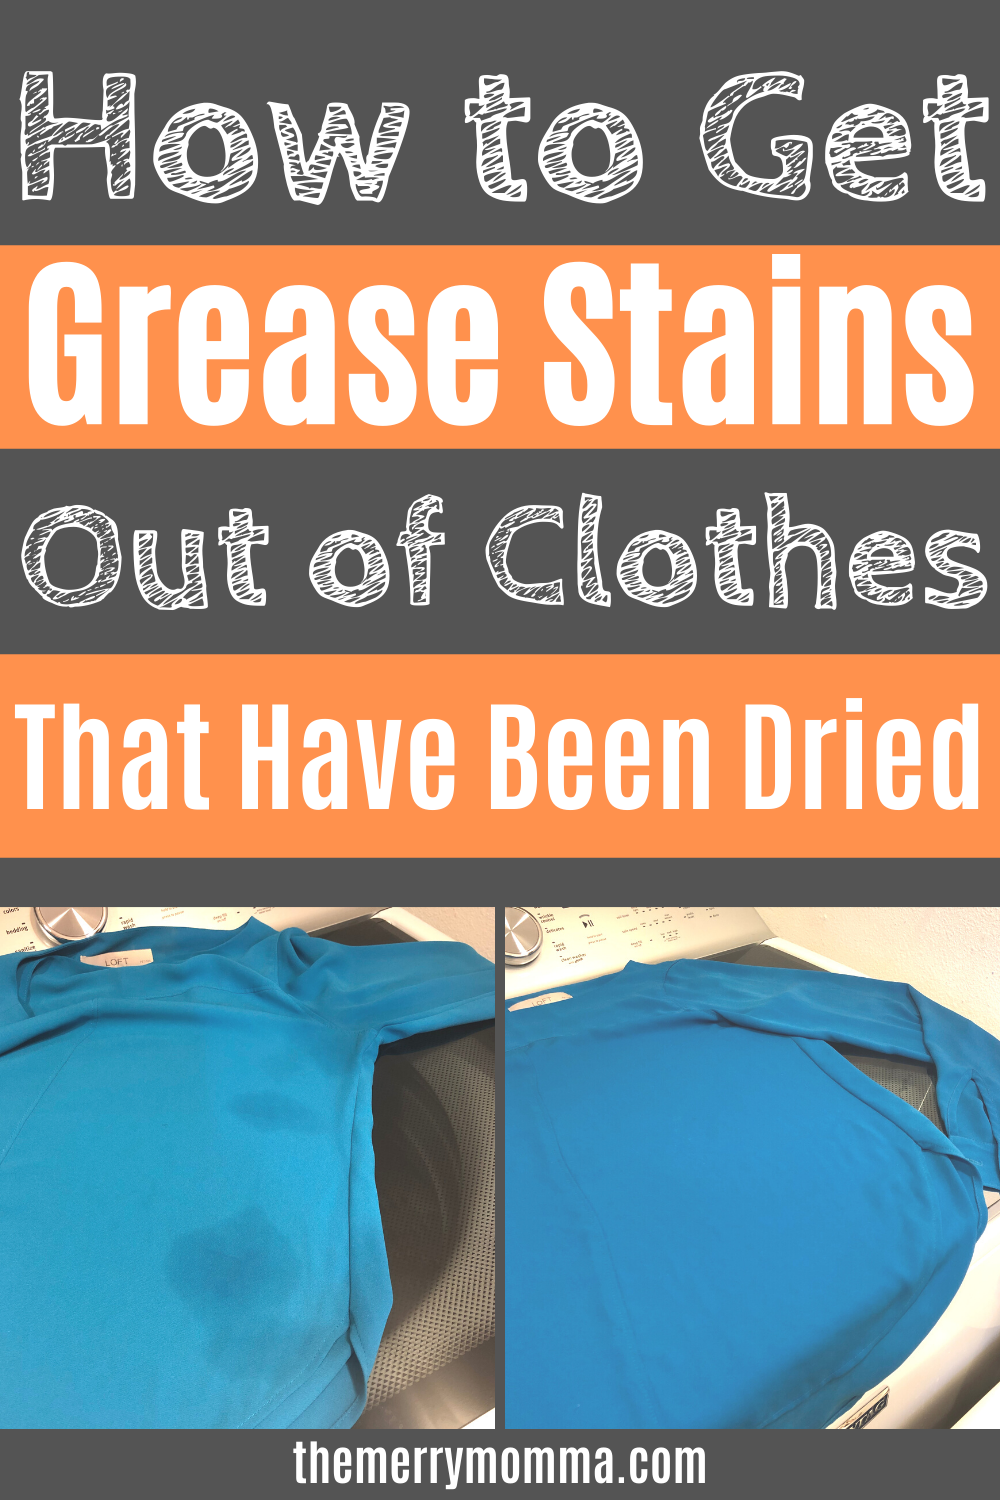 How to Get Grease Stains Out of Clothes That Have Been Dried